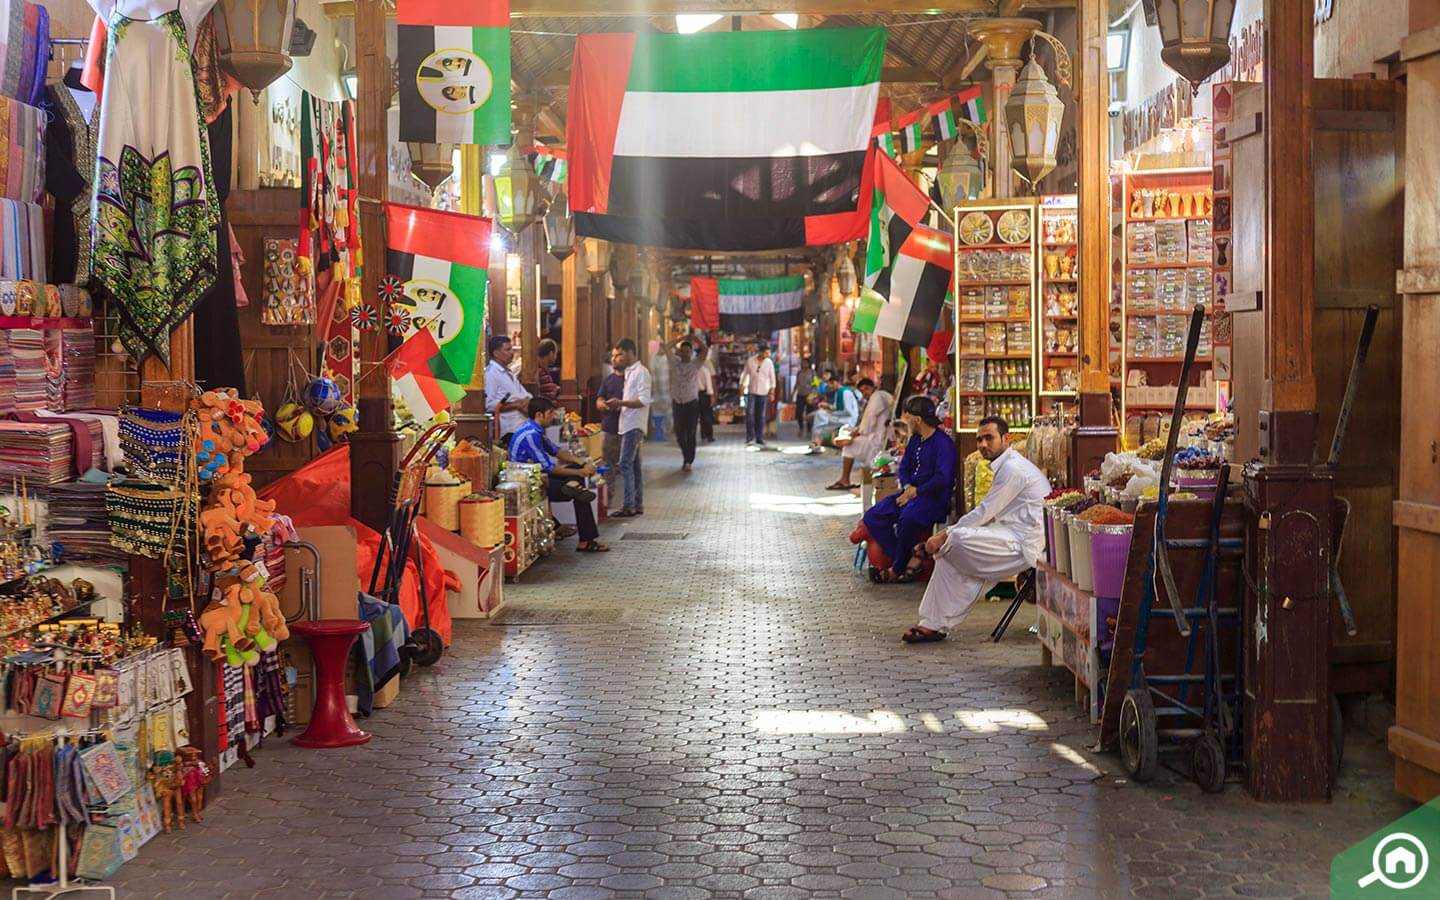 The Old Souks